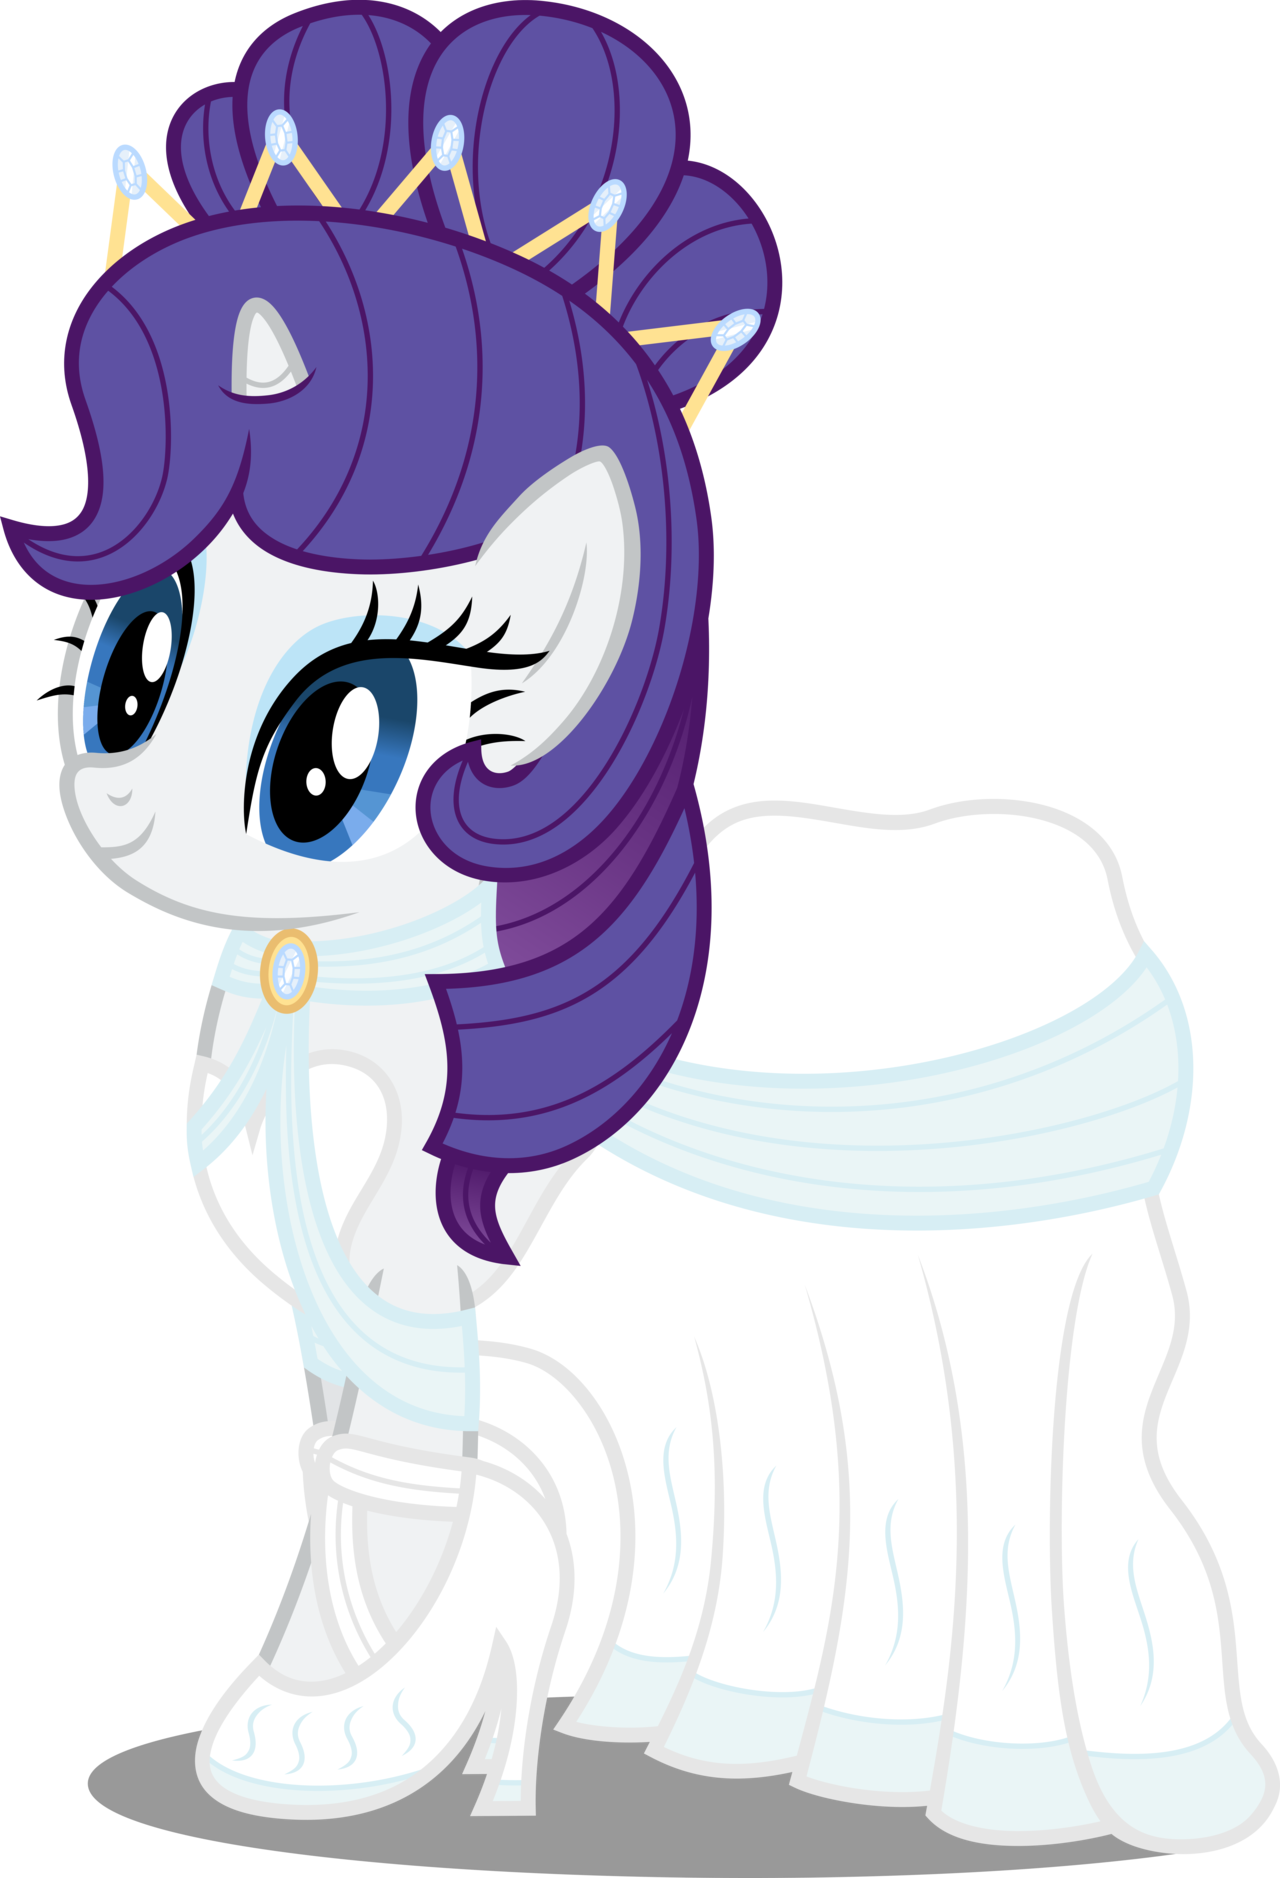 my forever magic rarity dash is pink photos purple pinkie cartoon twilight sparkle blue fluttershy pie little rainbow applejack mammal pony spike are friendship butts diamond